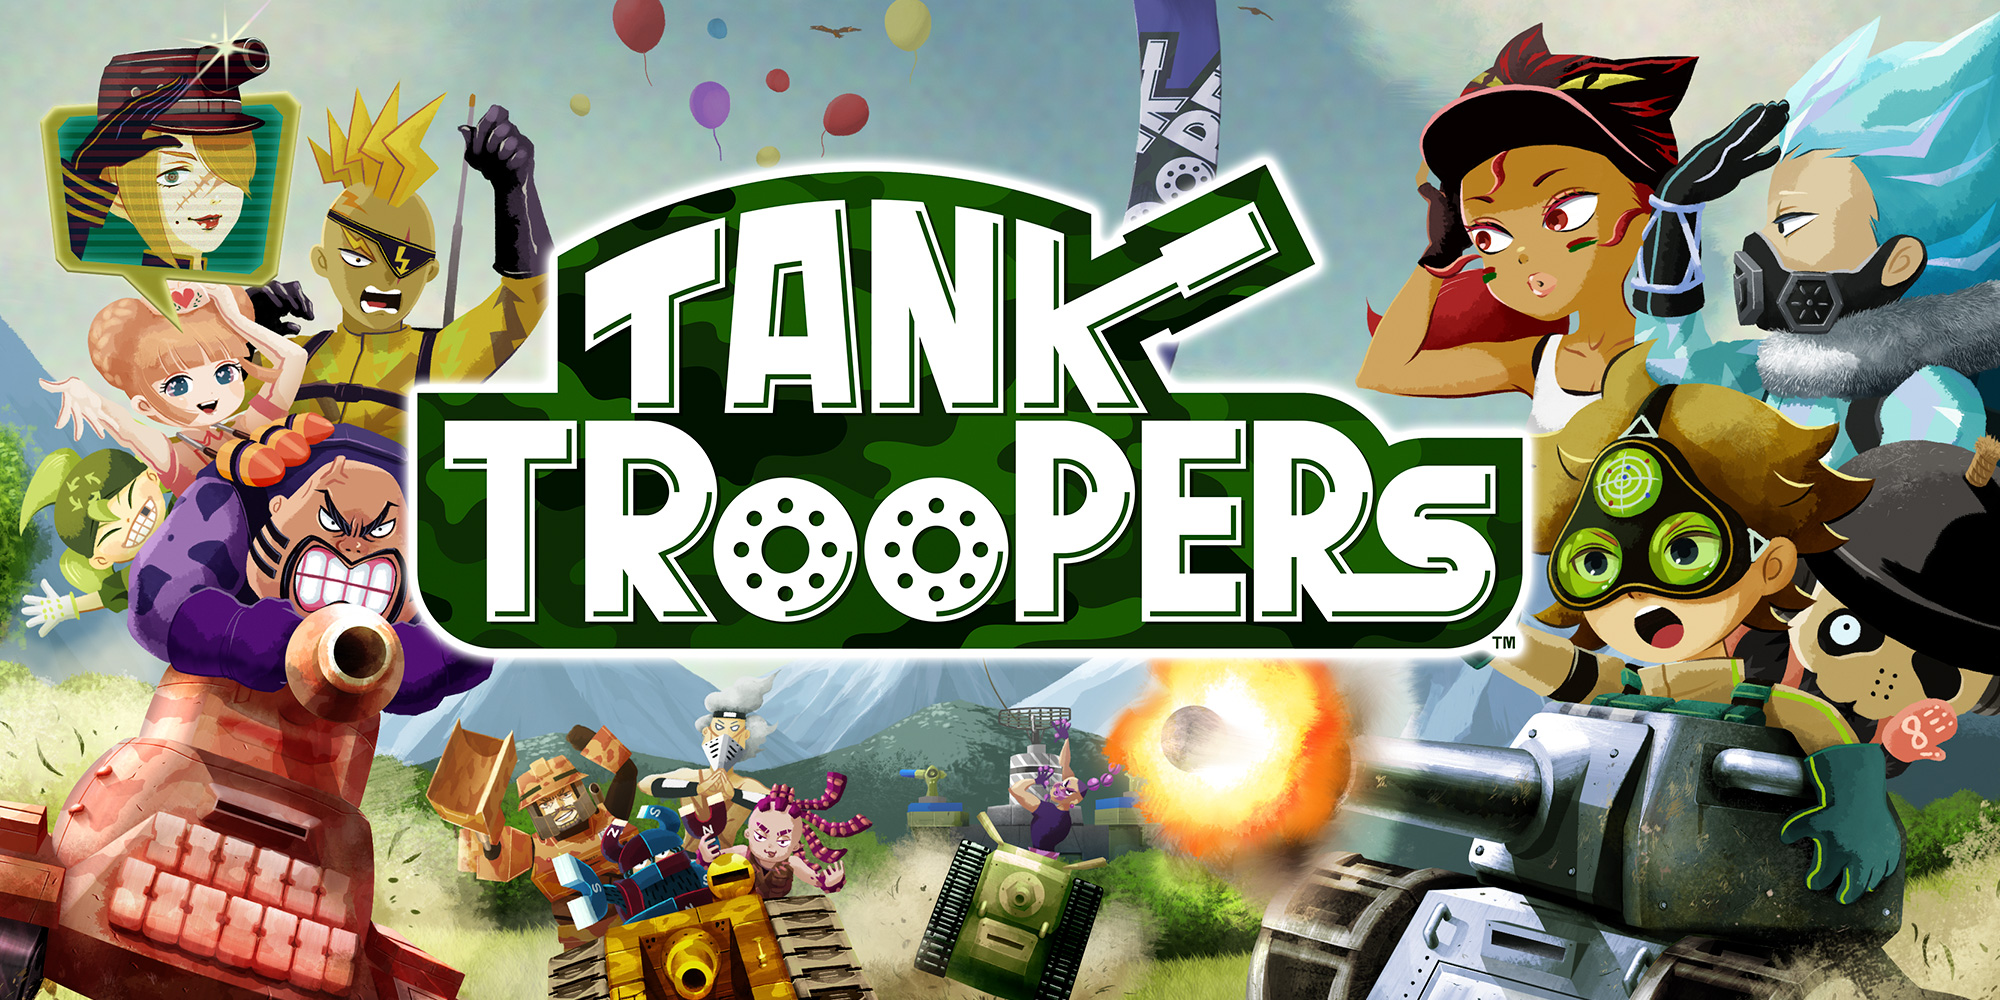 Attention! Prepare to roll out at our Tank Troopers website